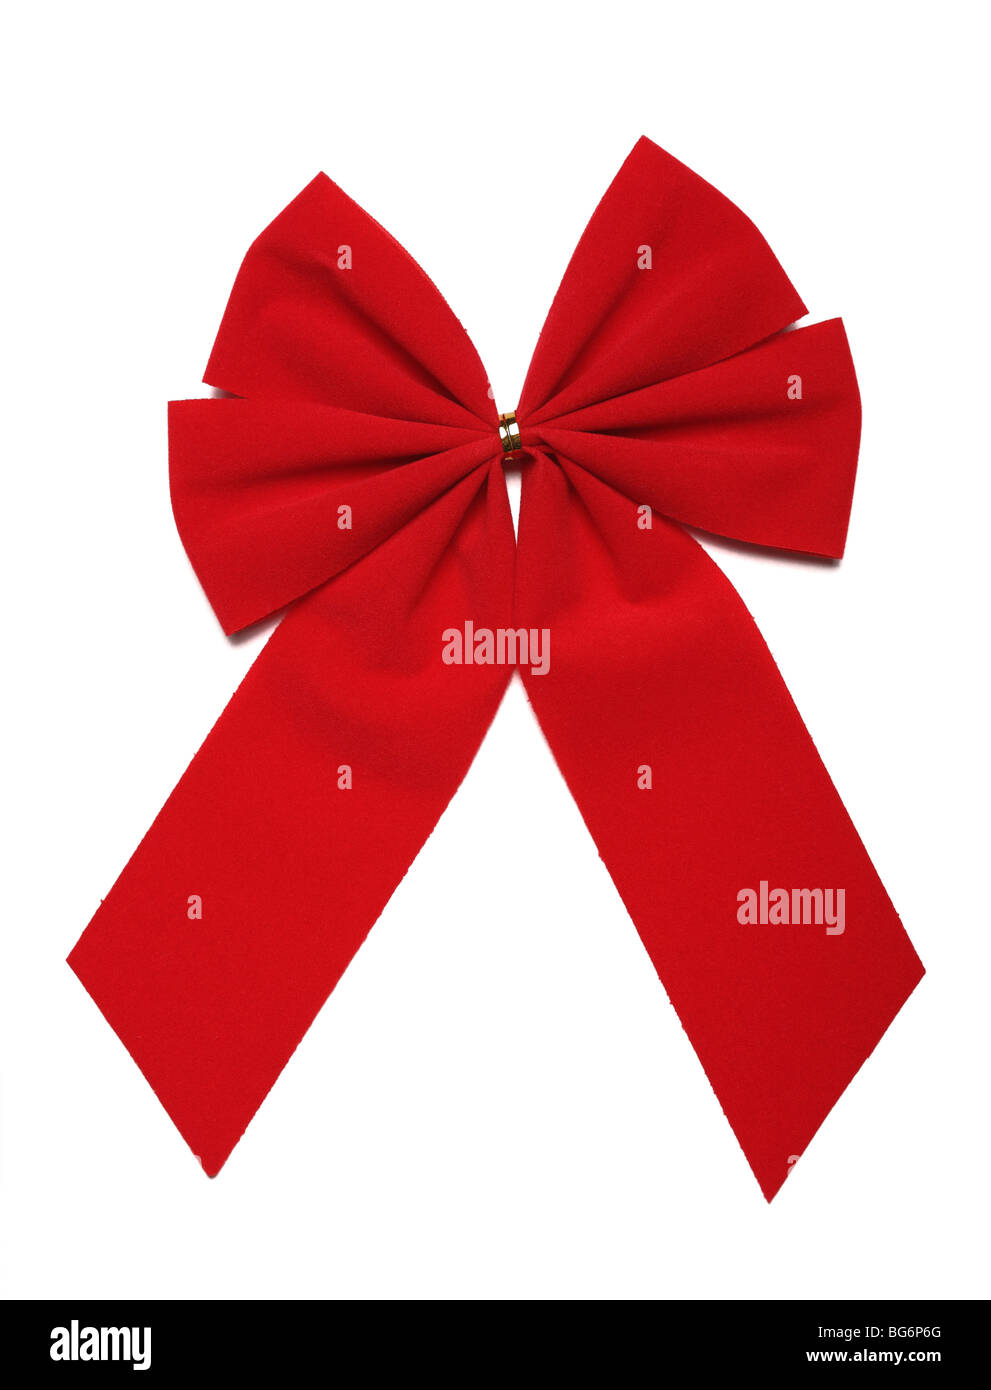 Red Christmas Bow Isolated On White Background With Clipping Path. The perfect object for your artwork. - Stock Image